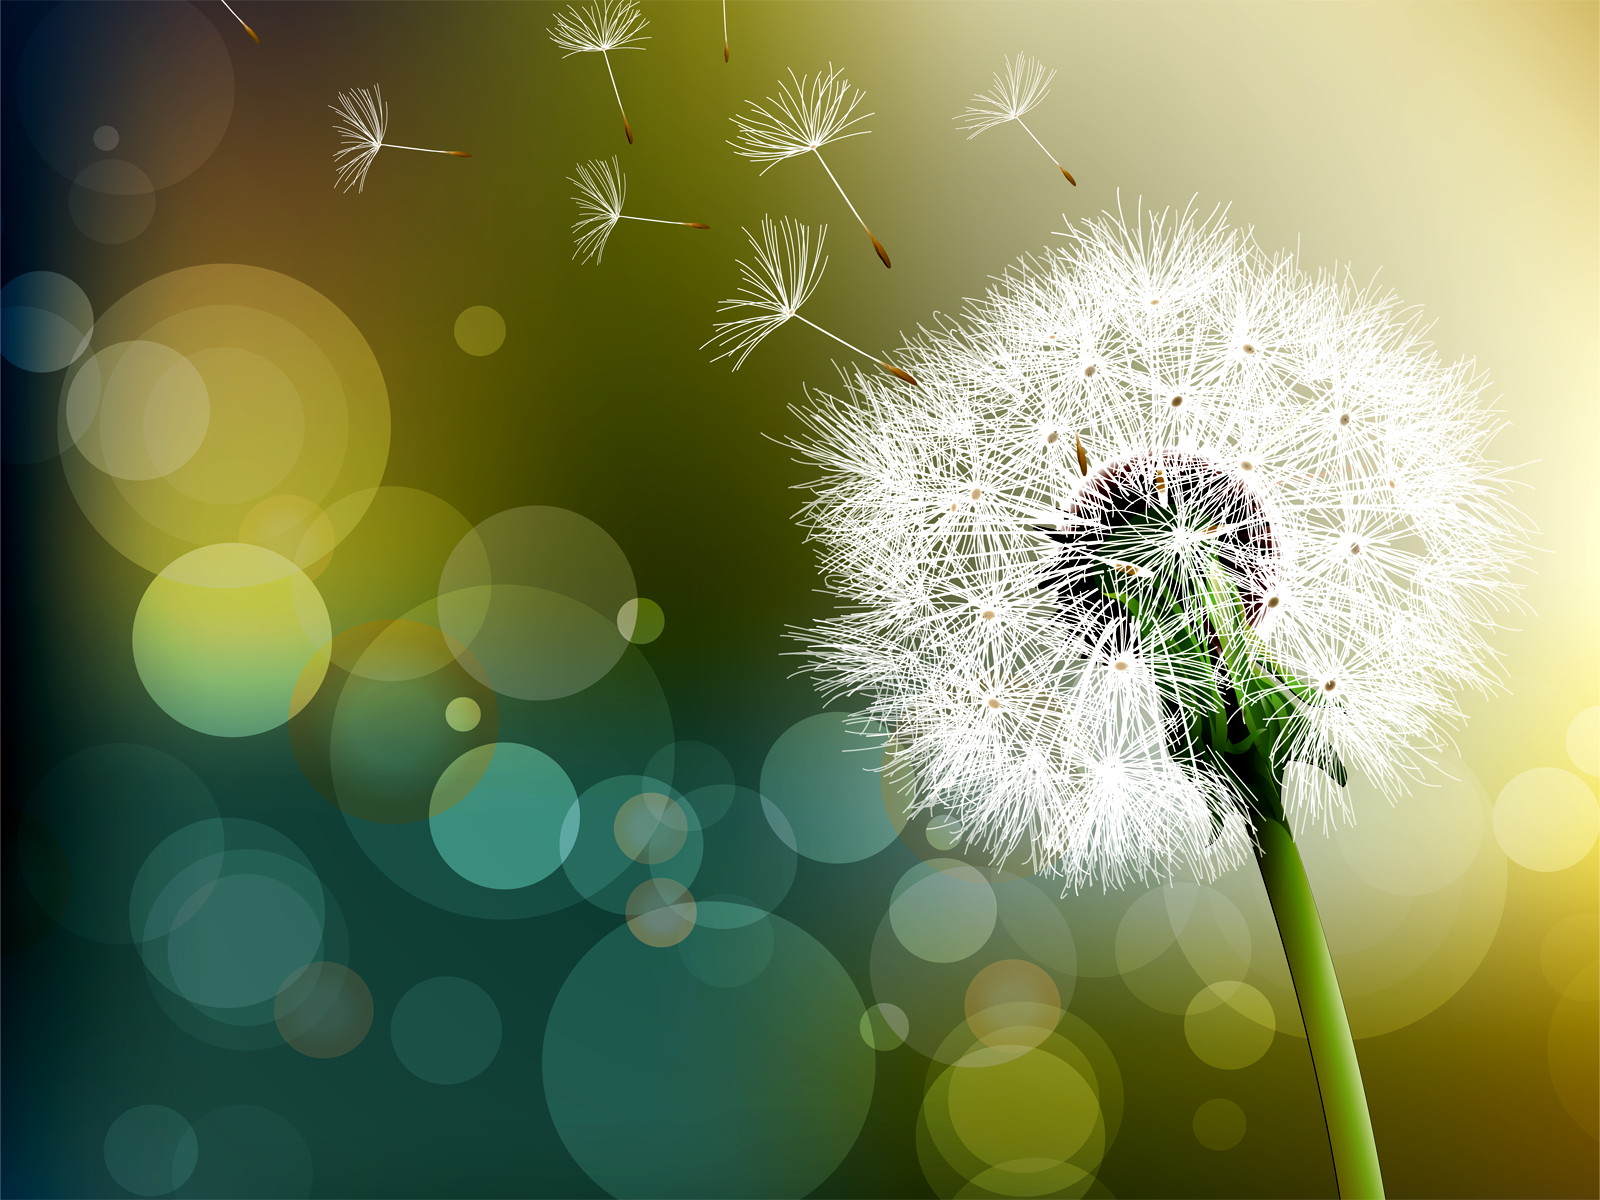 flower-wallpapers-dandelion-wallpaper-wallpaper-33918